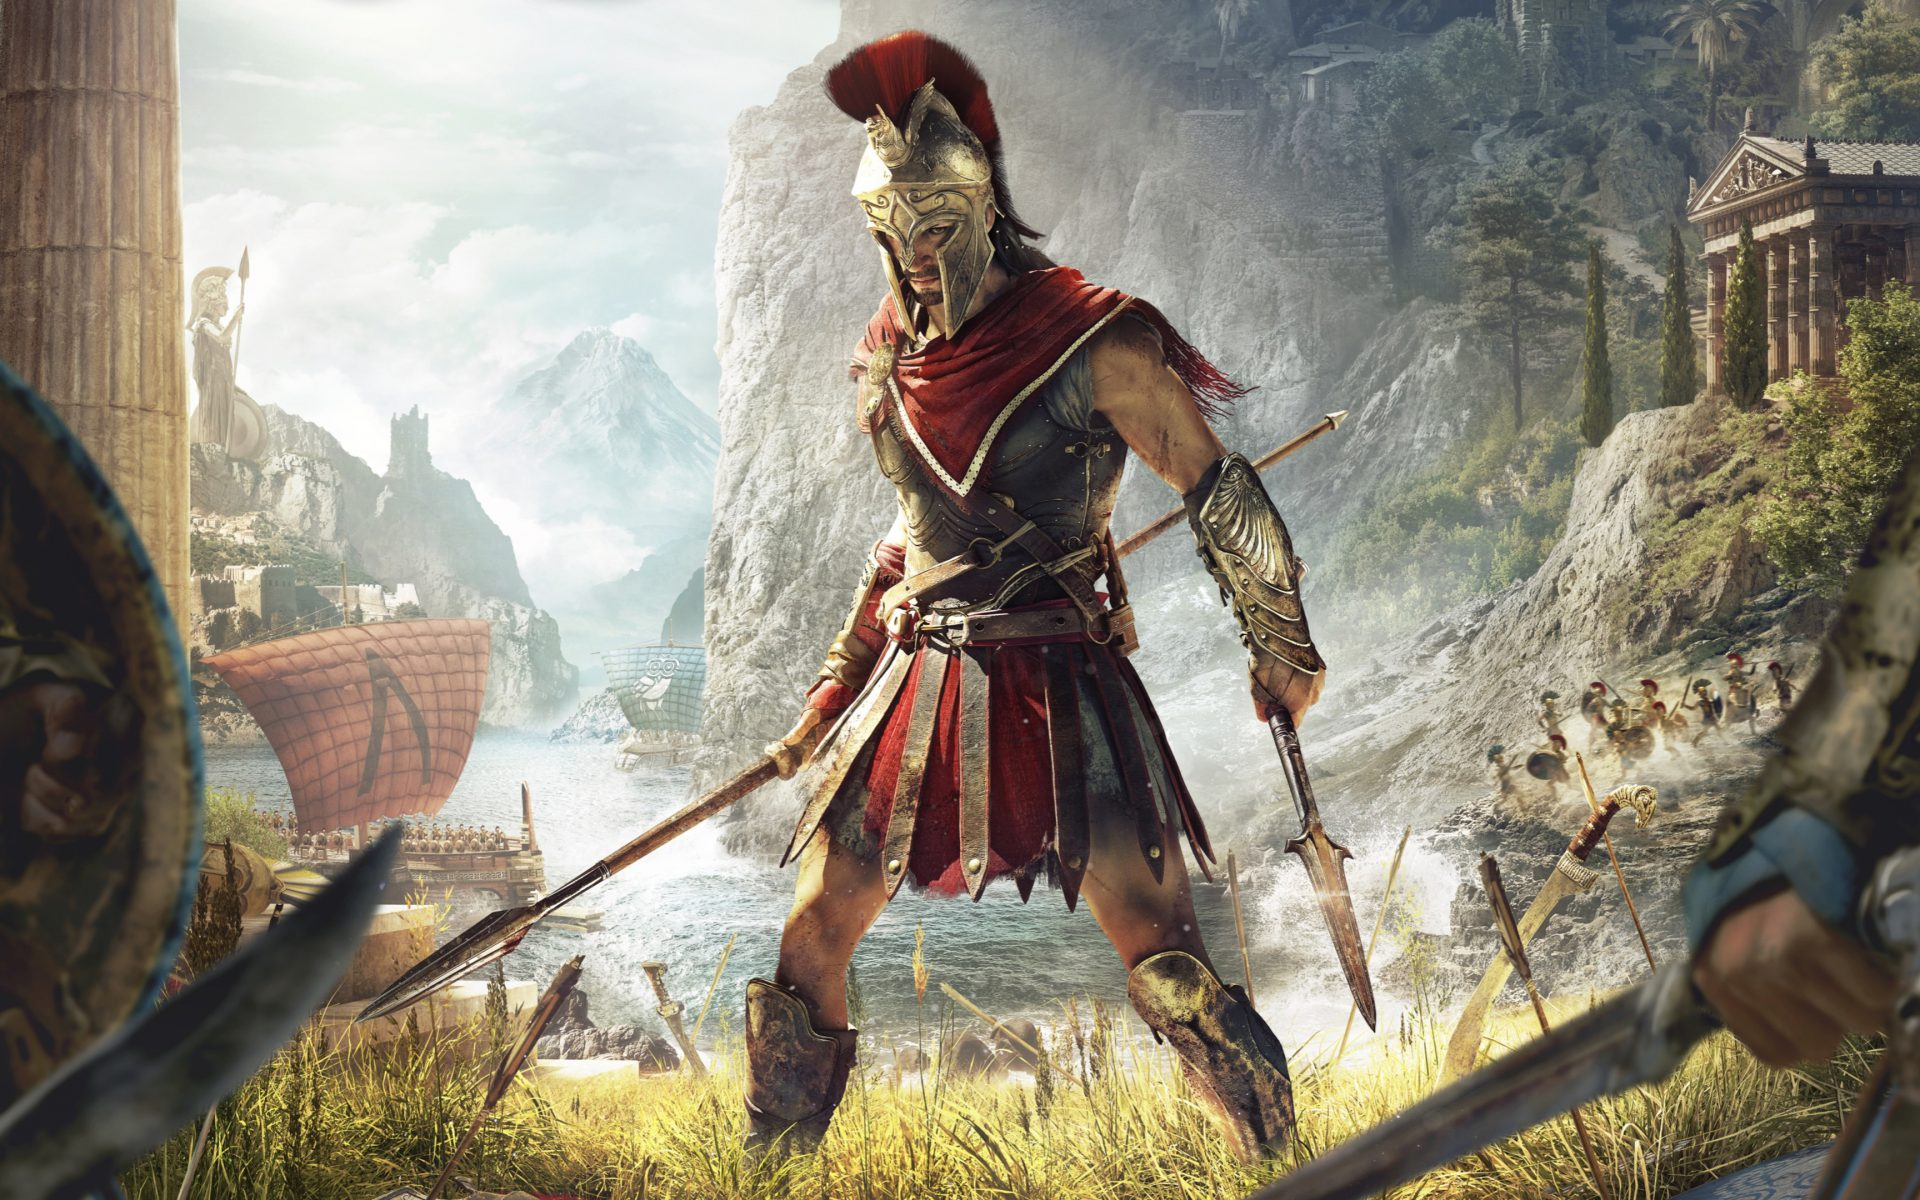 Assassin's Creed Odyssey Game 4K Wallpaper - Best Wallpapers